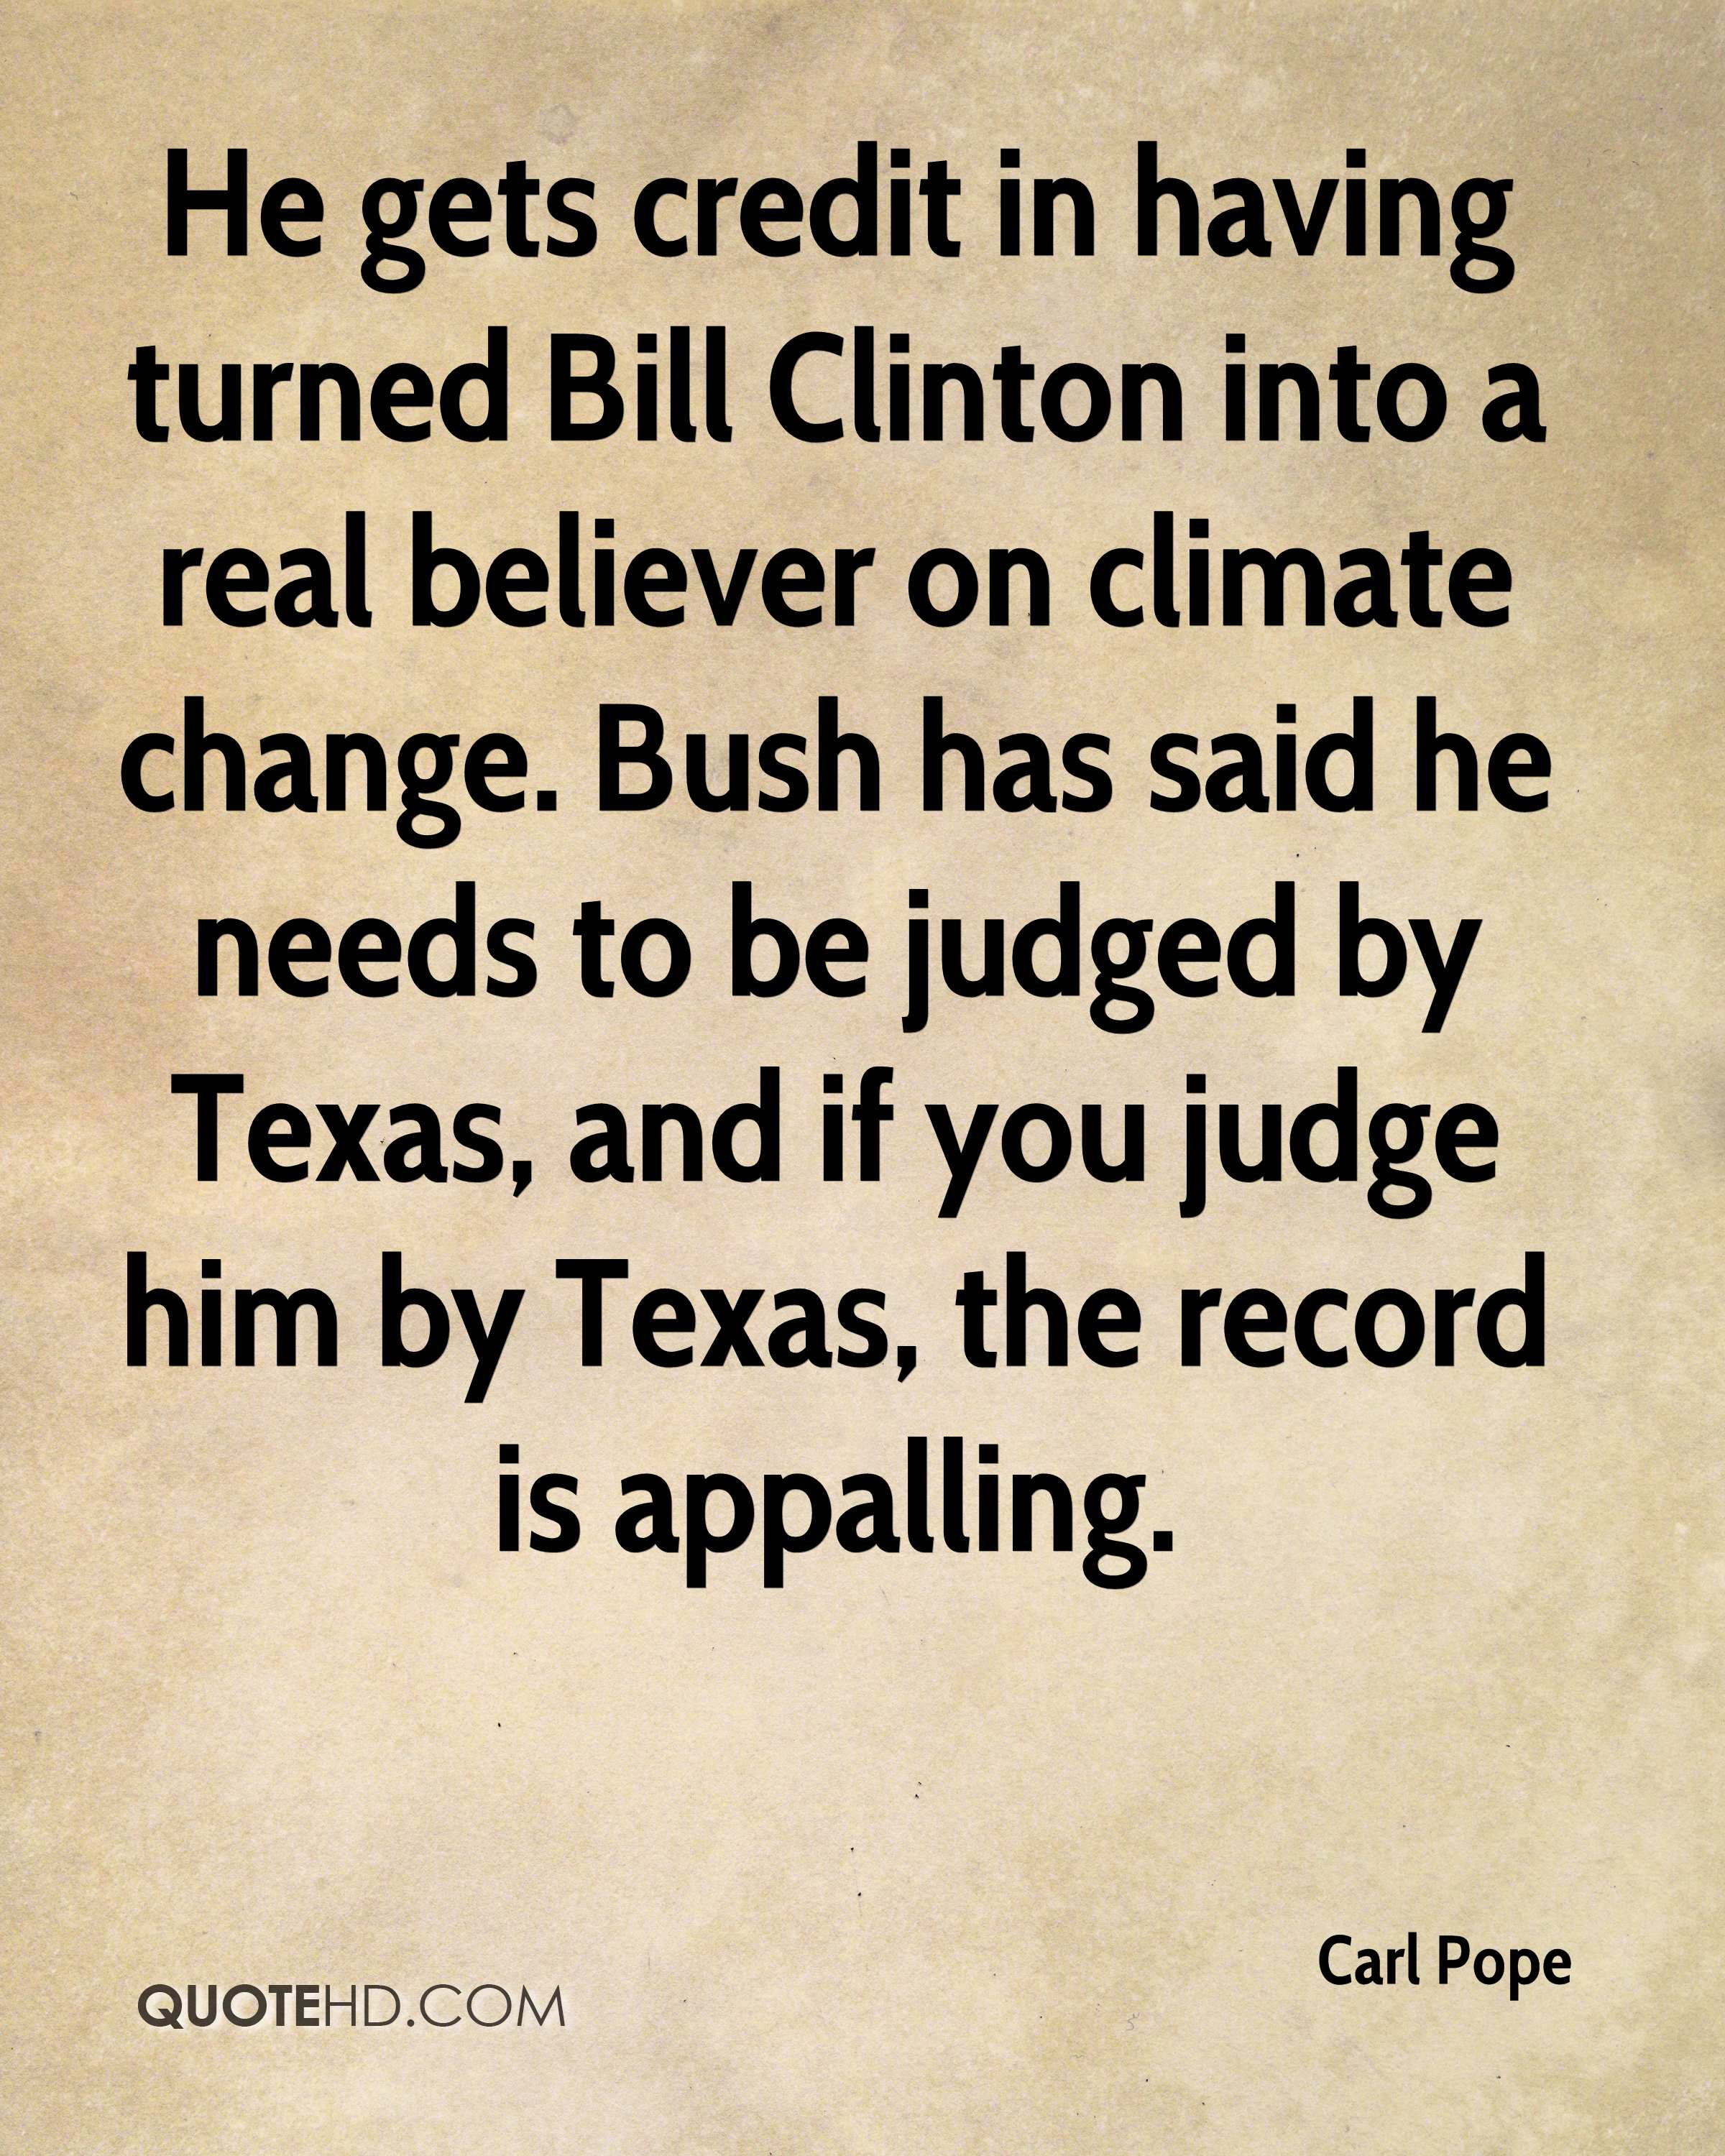 He gets credit in having turned Bill Clinton into a real believer on climate change. Bush has said he needs to be judged by Texas, and if you judge him by Texas, the record is appalling.